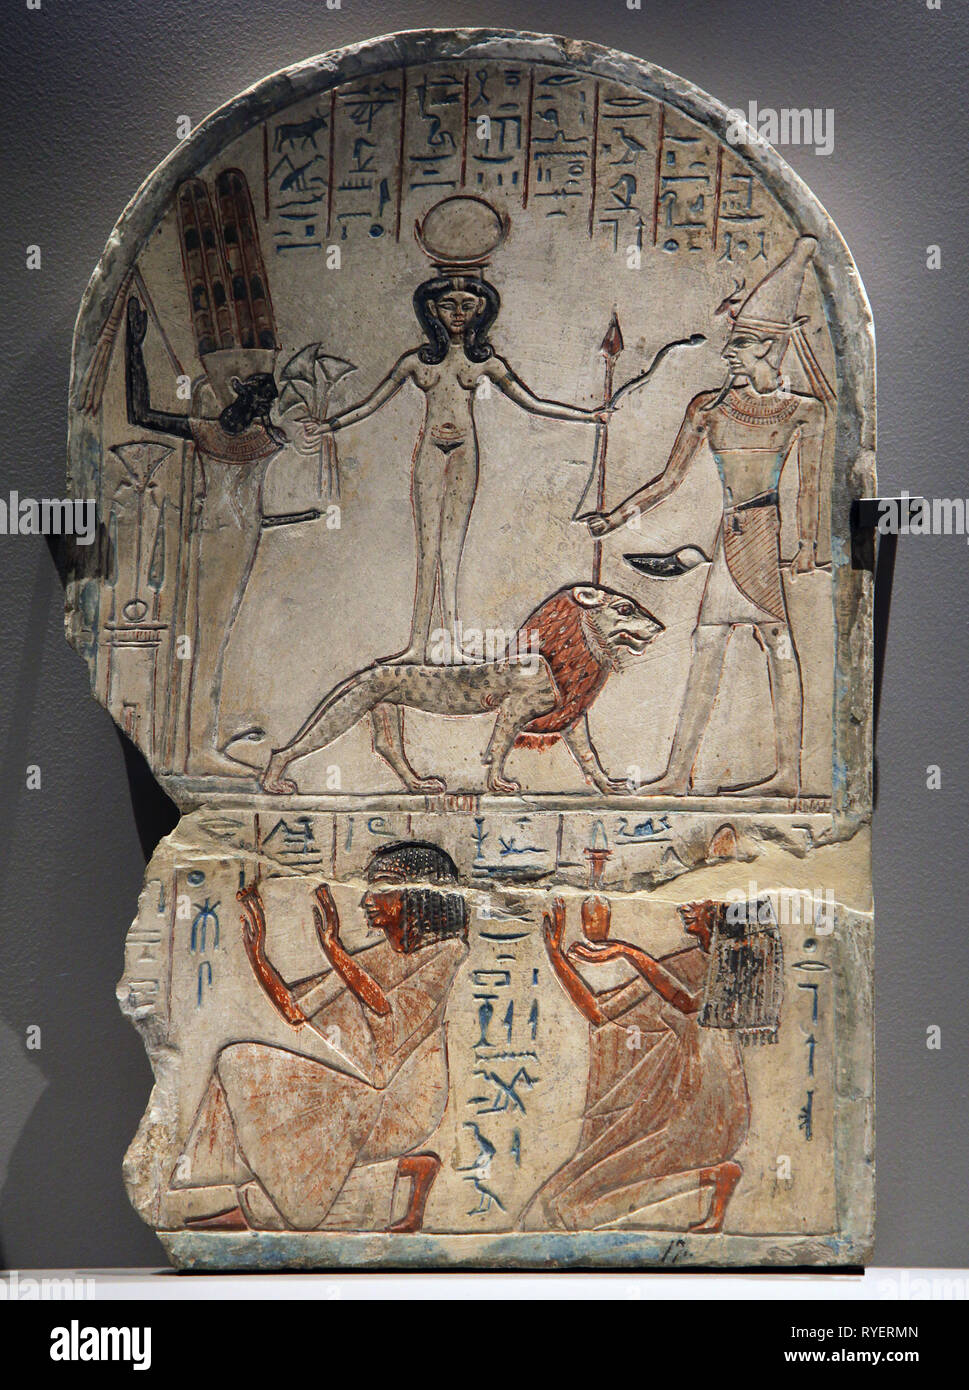 Kadesh and Resjef.1292-1191 bc.Gods of Egypt.Ancient Egyptian Pantheon.Gods and Goddesses of the Ancient Egyptians. - Stock Image